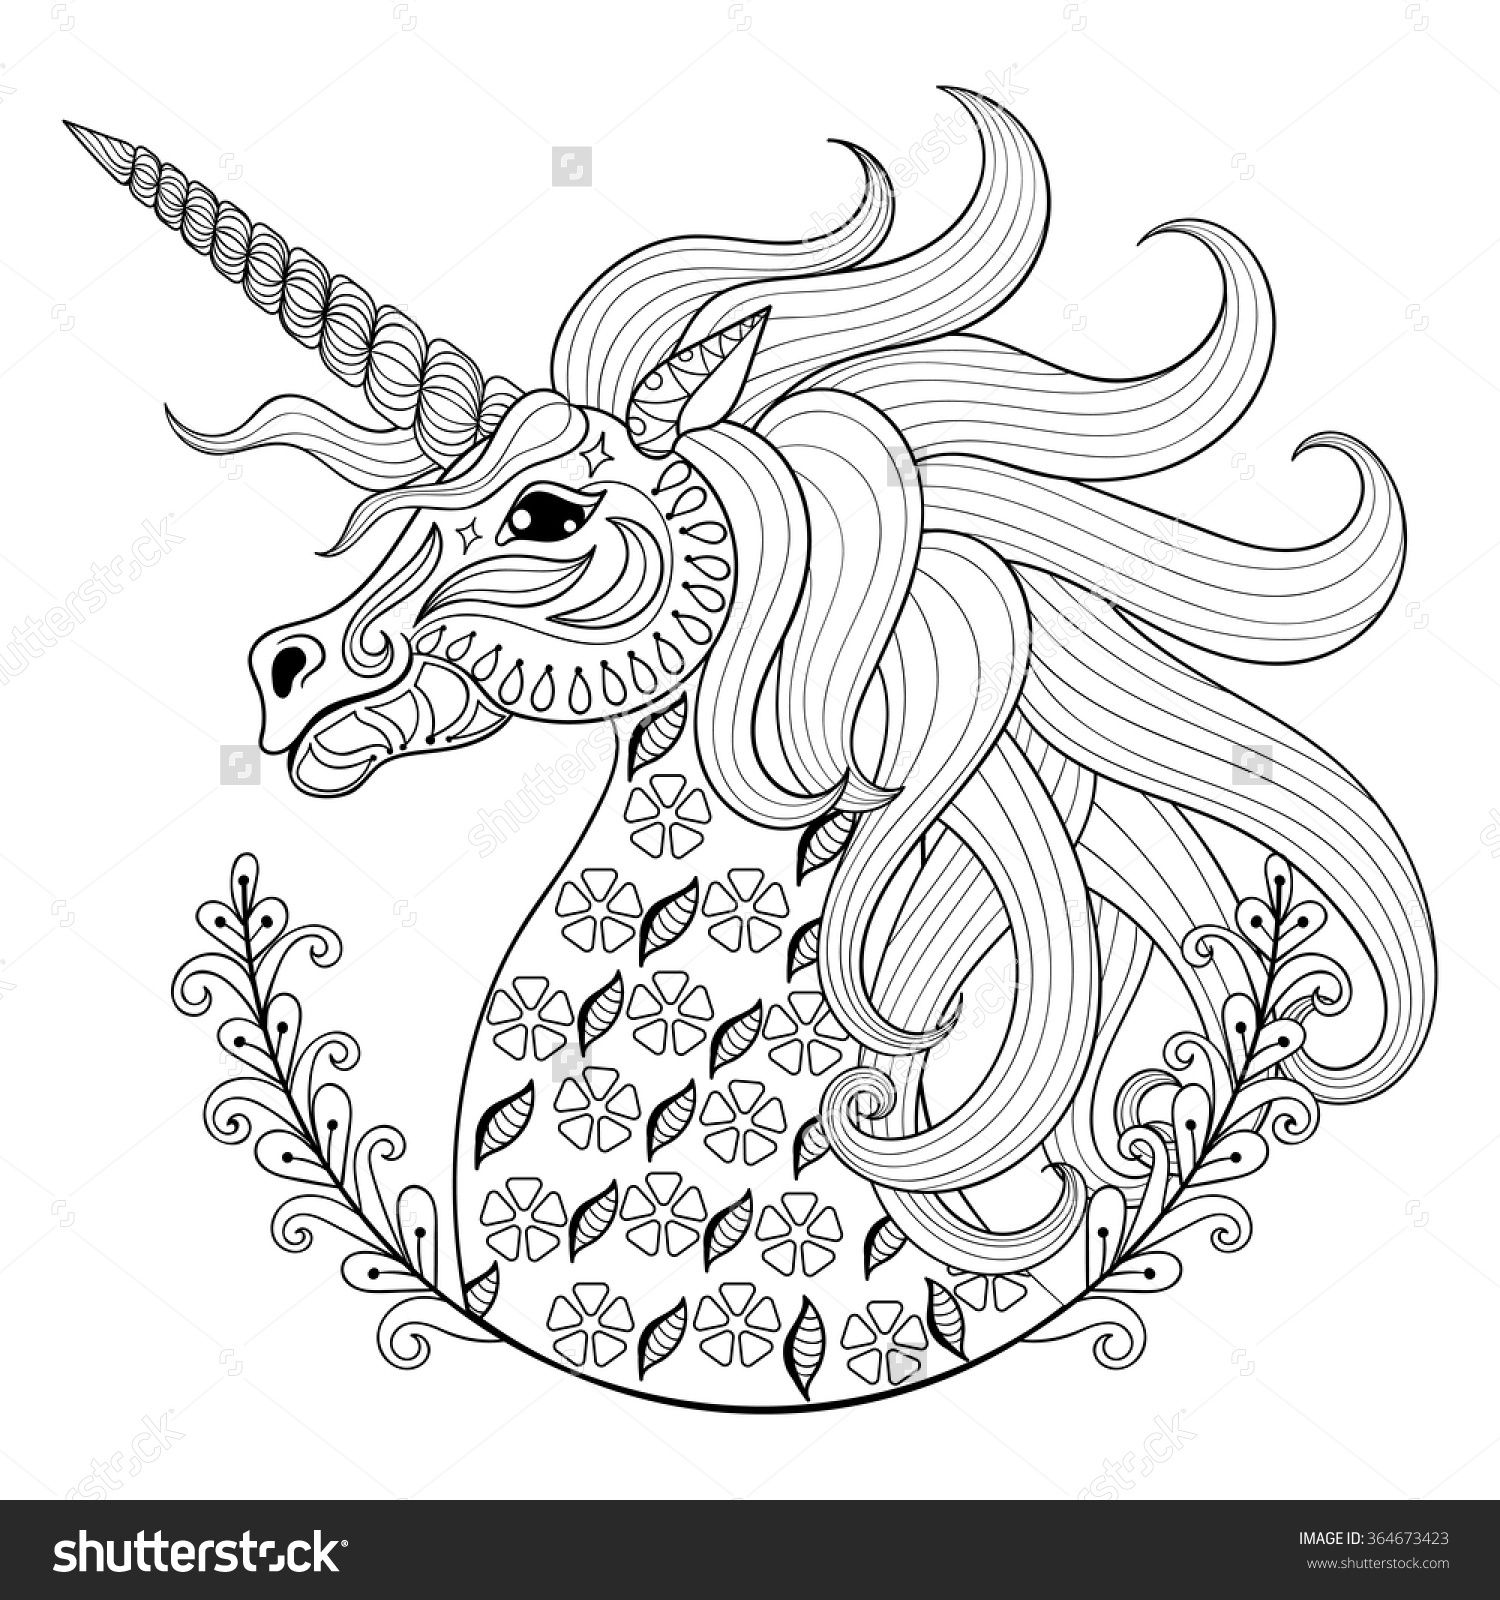 Princess unicorn colouring pages - Ea0cae1c4d7ddc1da396e9a4c0f6327a Jpg